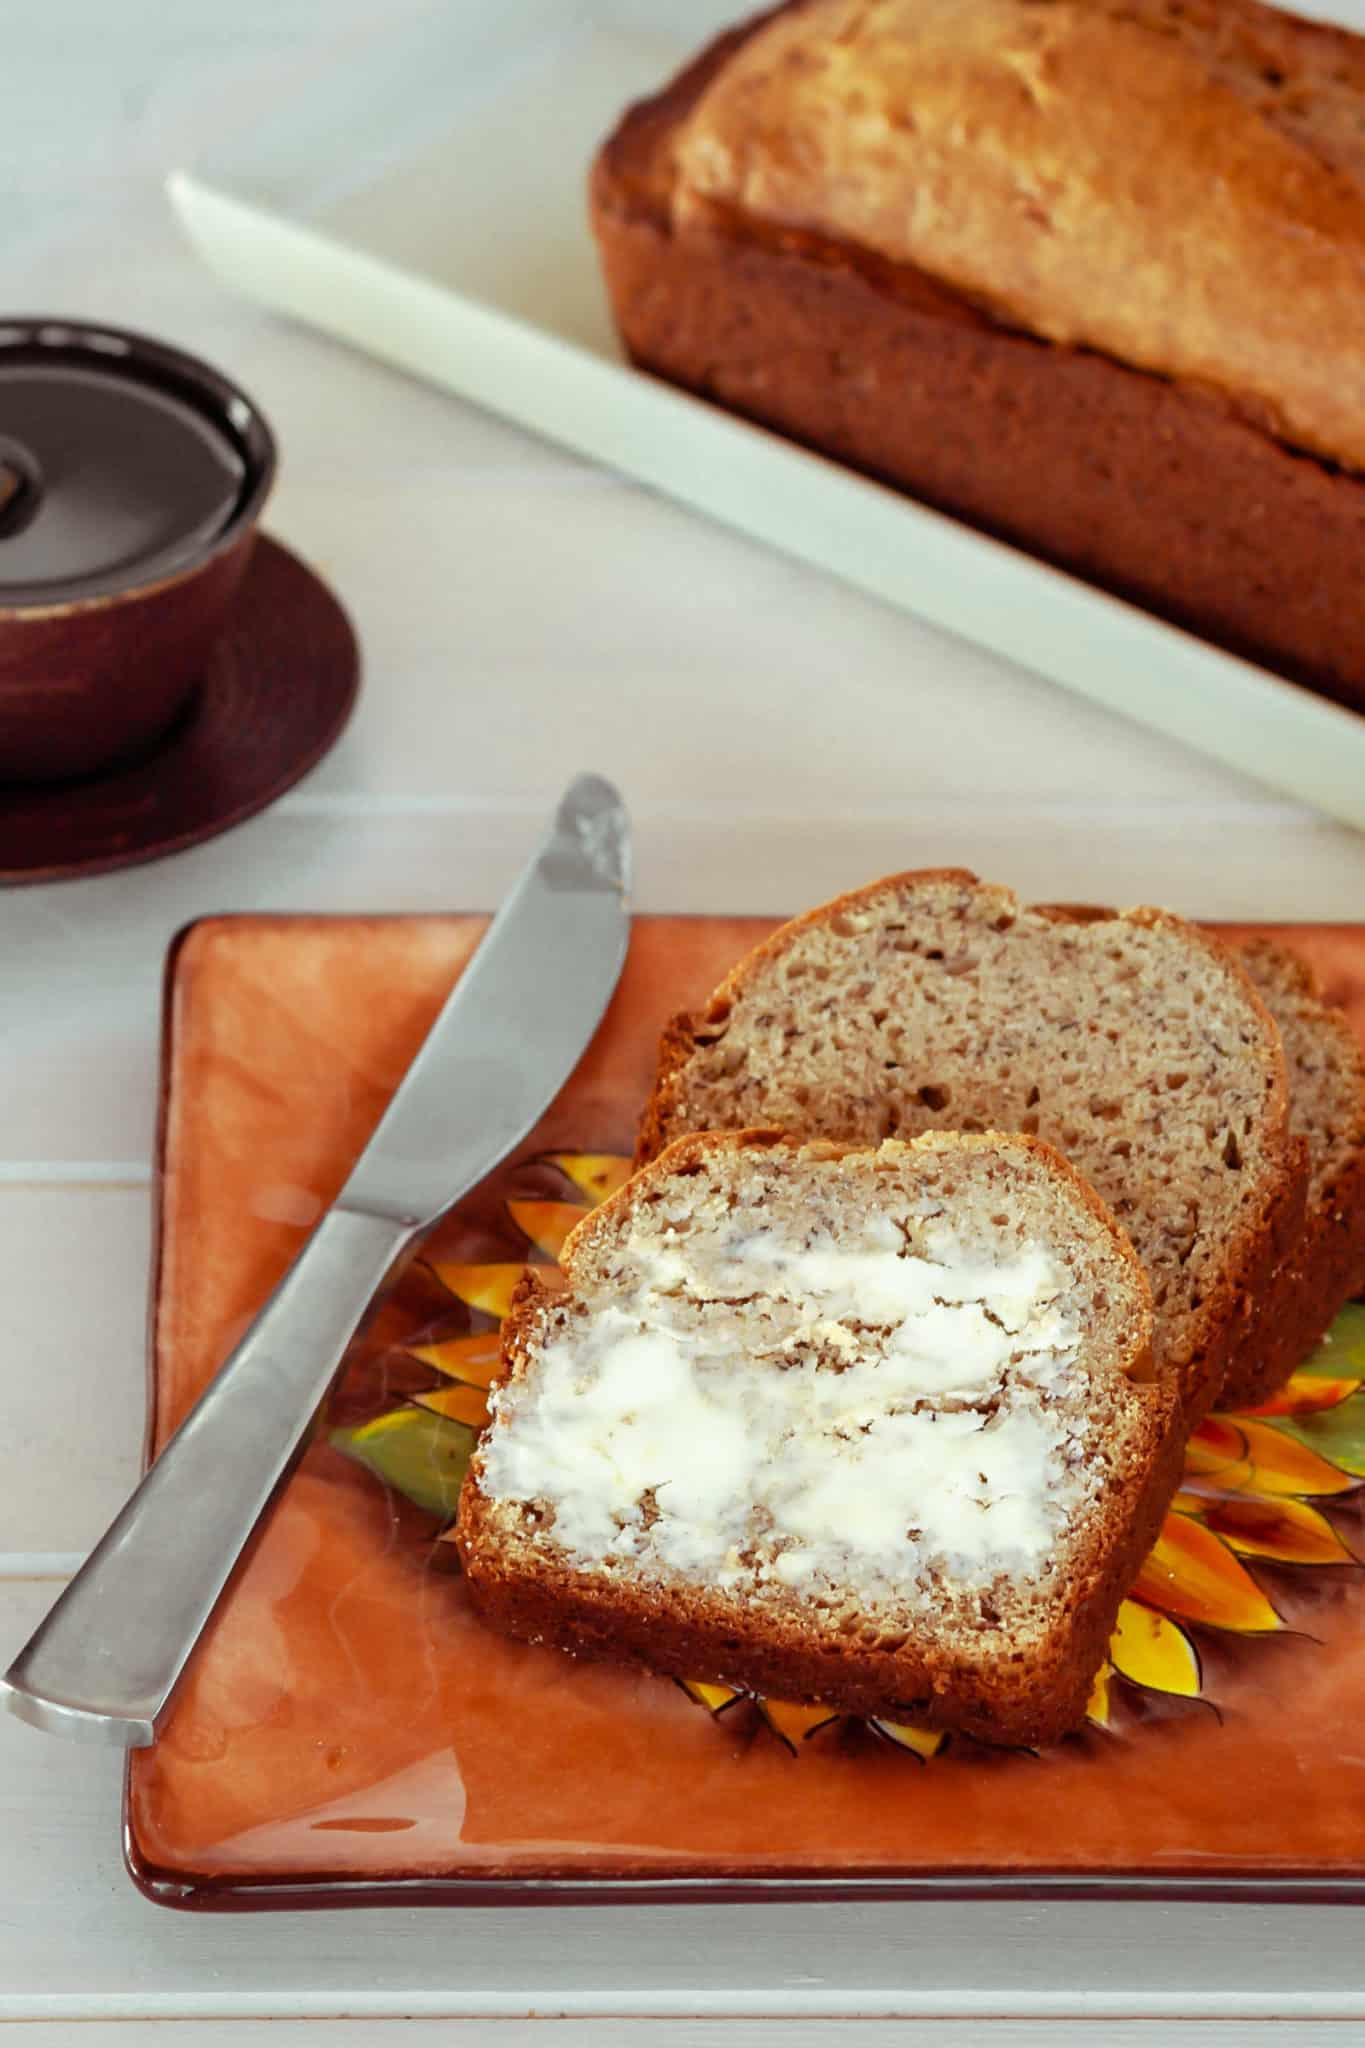 Delicious slices of banana bread topped with butter.